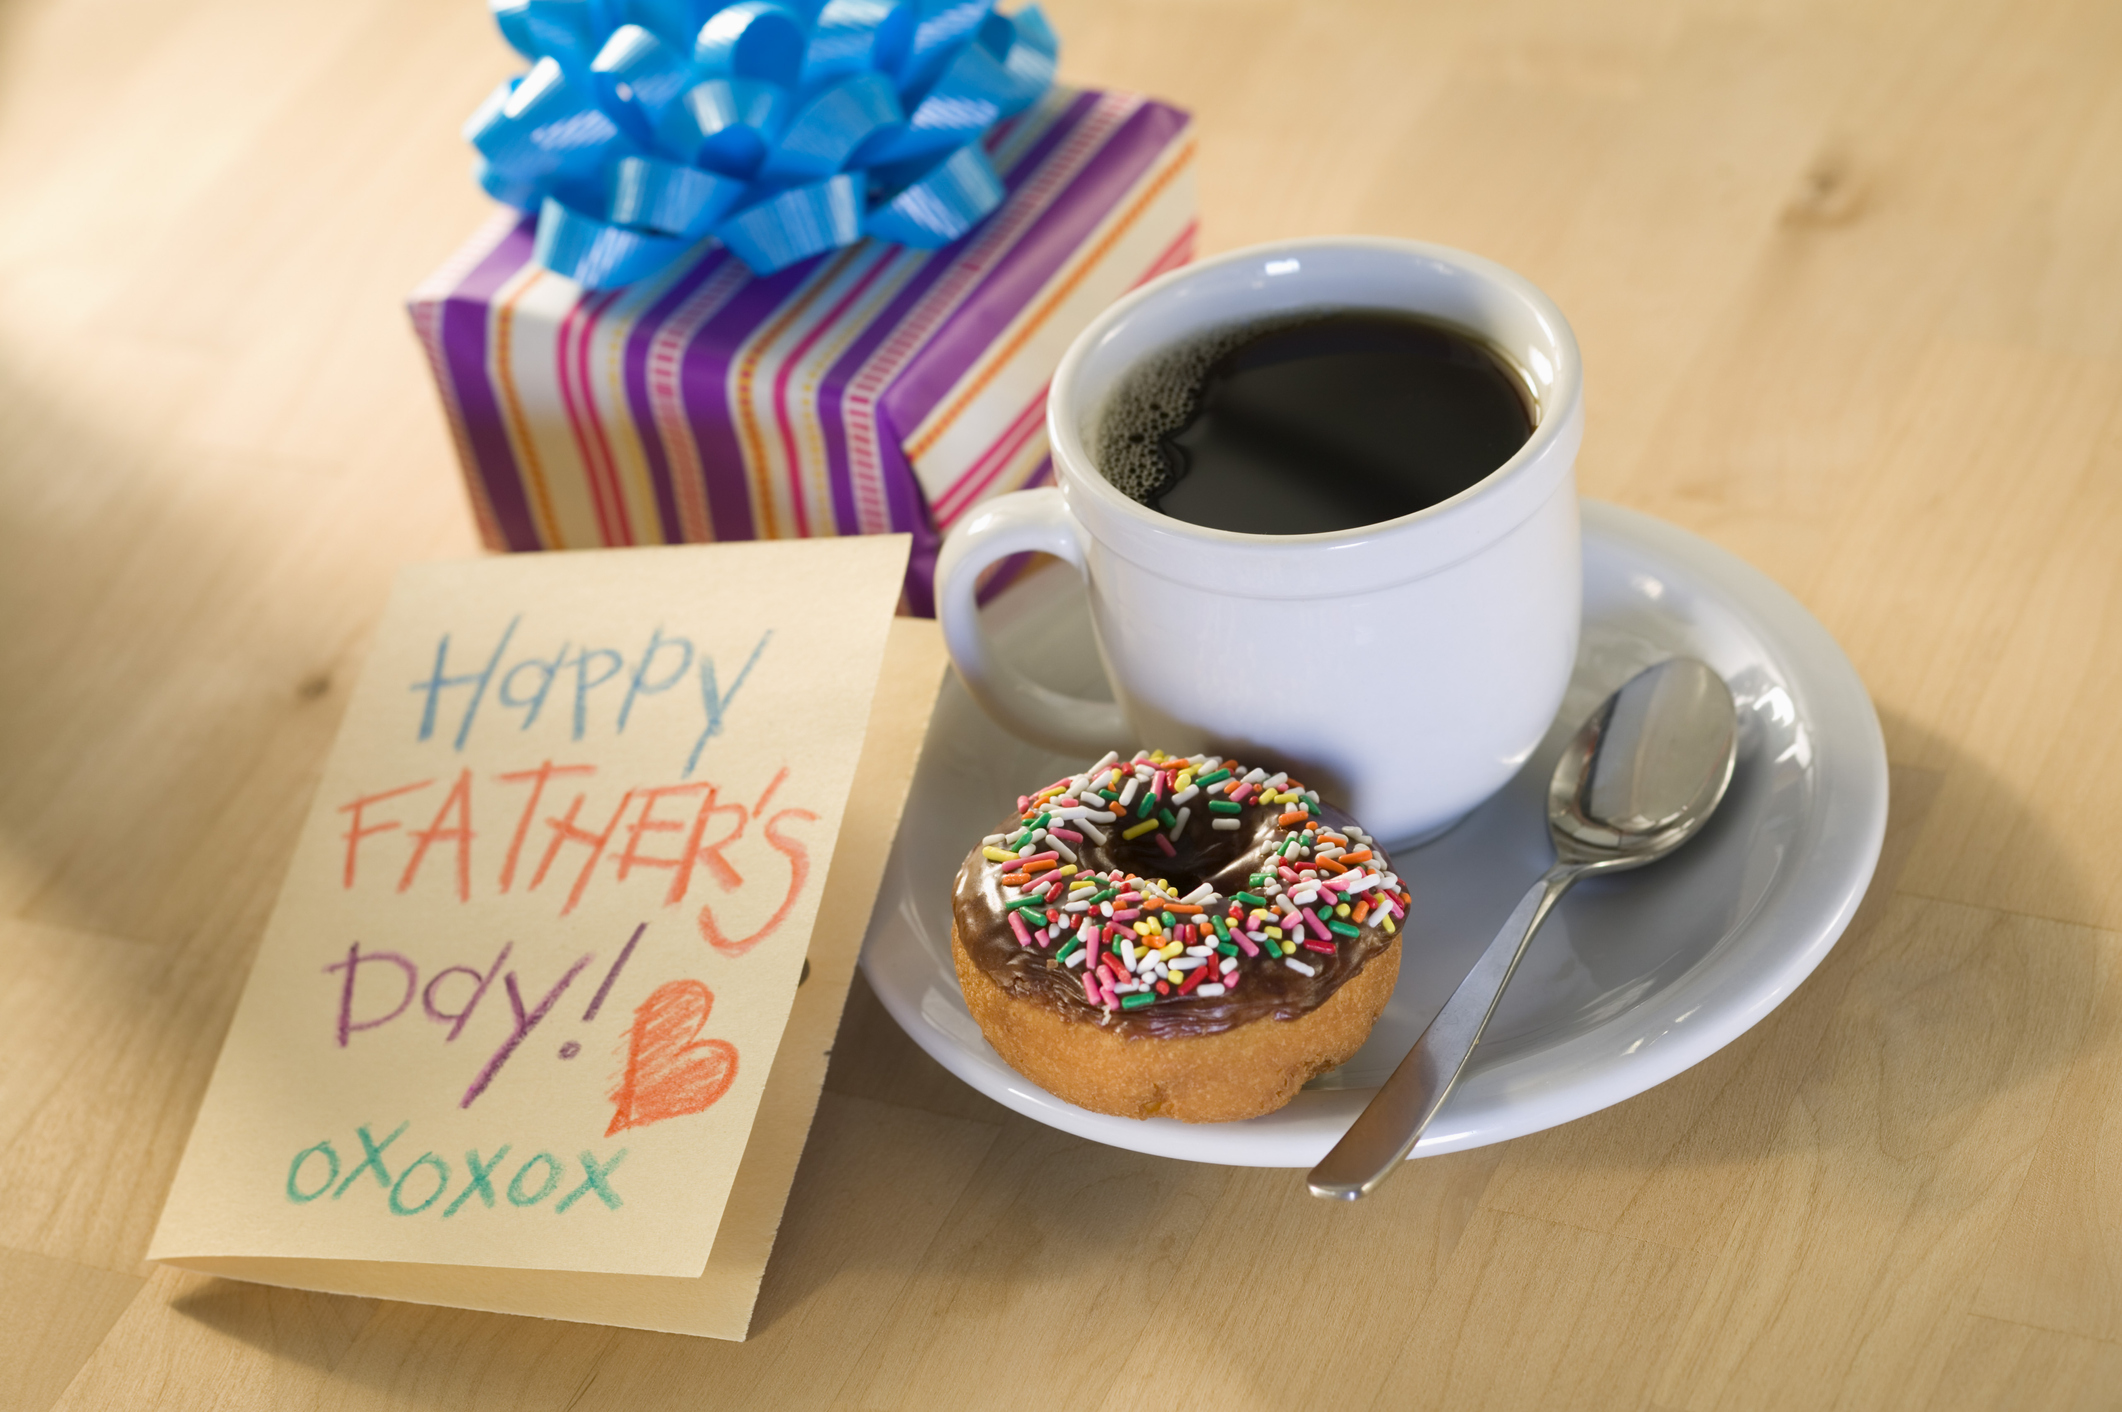 donut-and-coffee-with-father-s-day-cardjpg